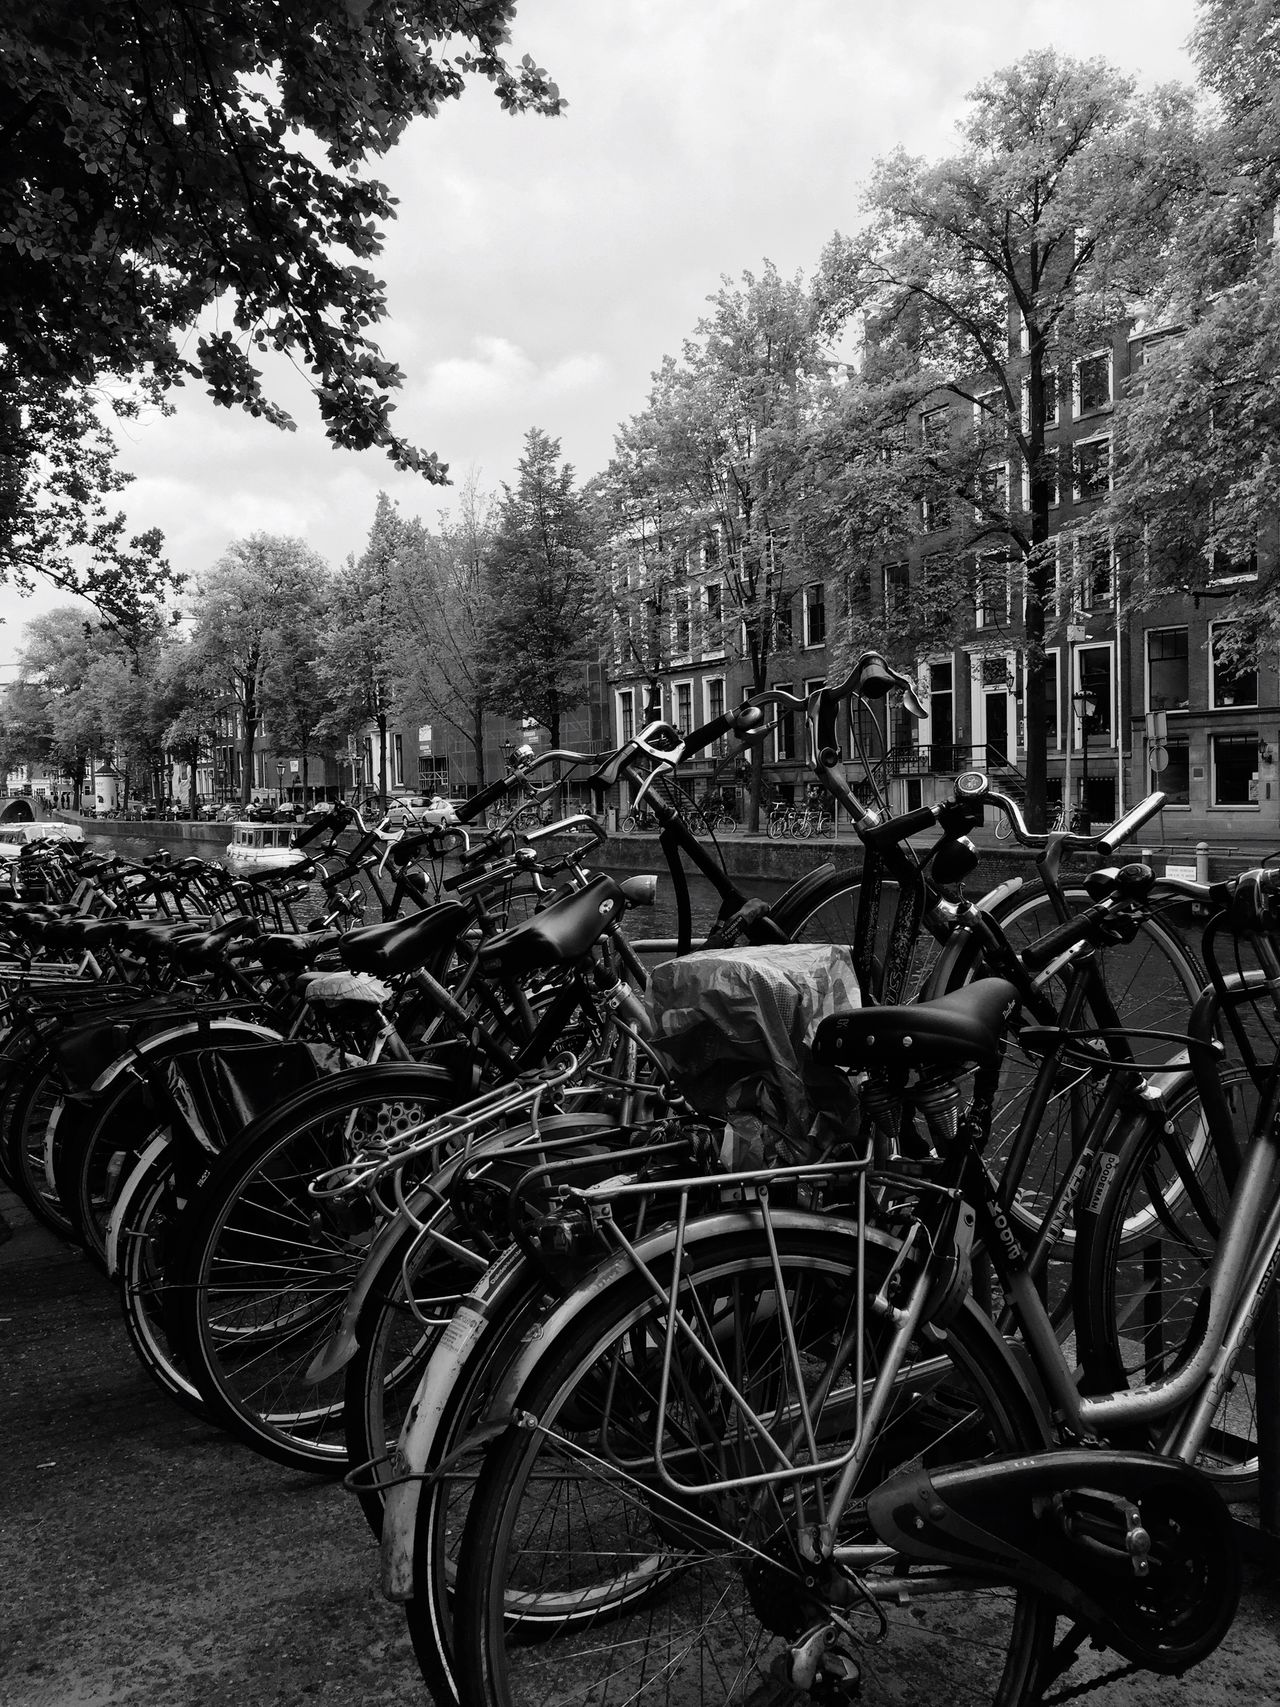 Bicycles Amsterdam Amsterdamcity Velos Blackandwhite The Street Photographer - 2017 EyeEm Awards